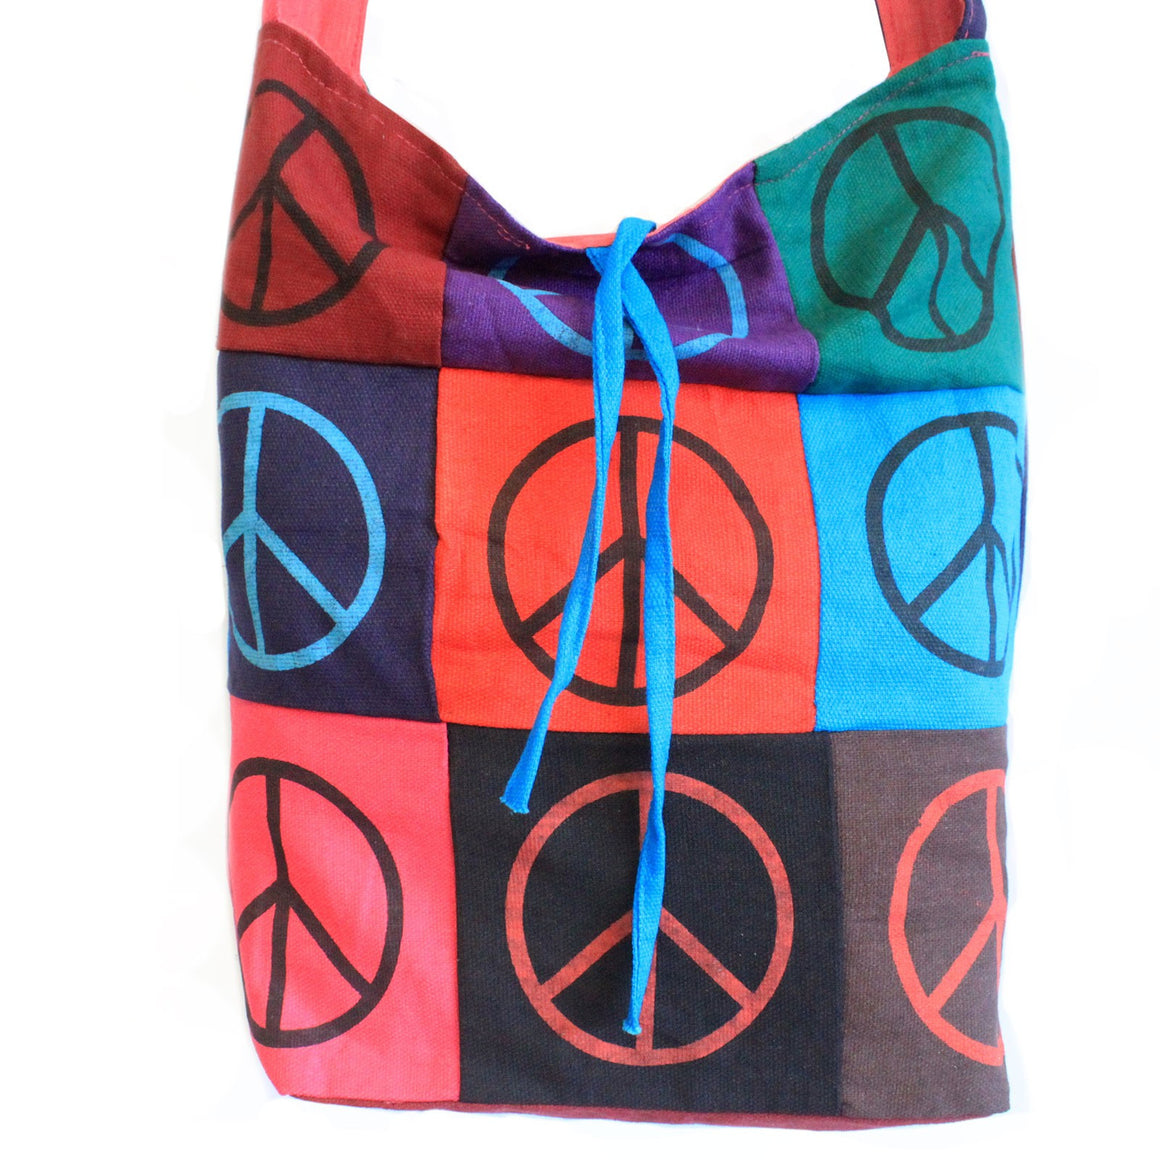 Bags, Cotton Patch Sling Bags, Ethnic Bags, Gift, India, Indian, Peace